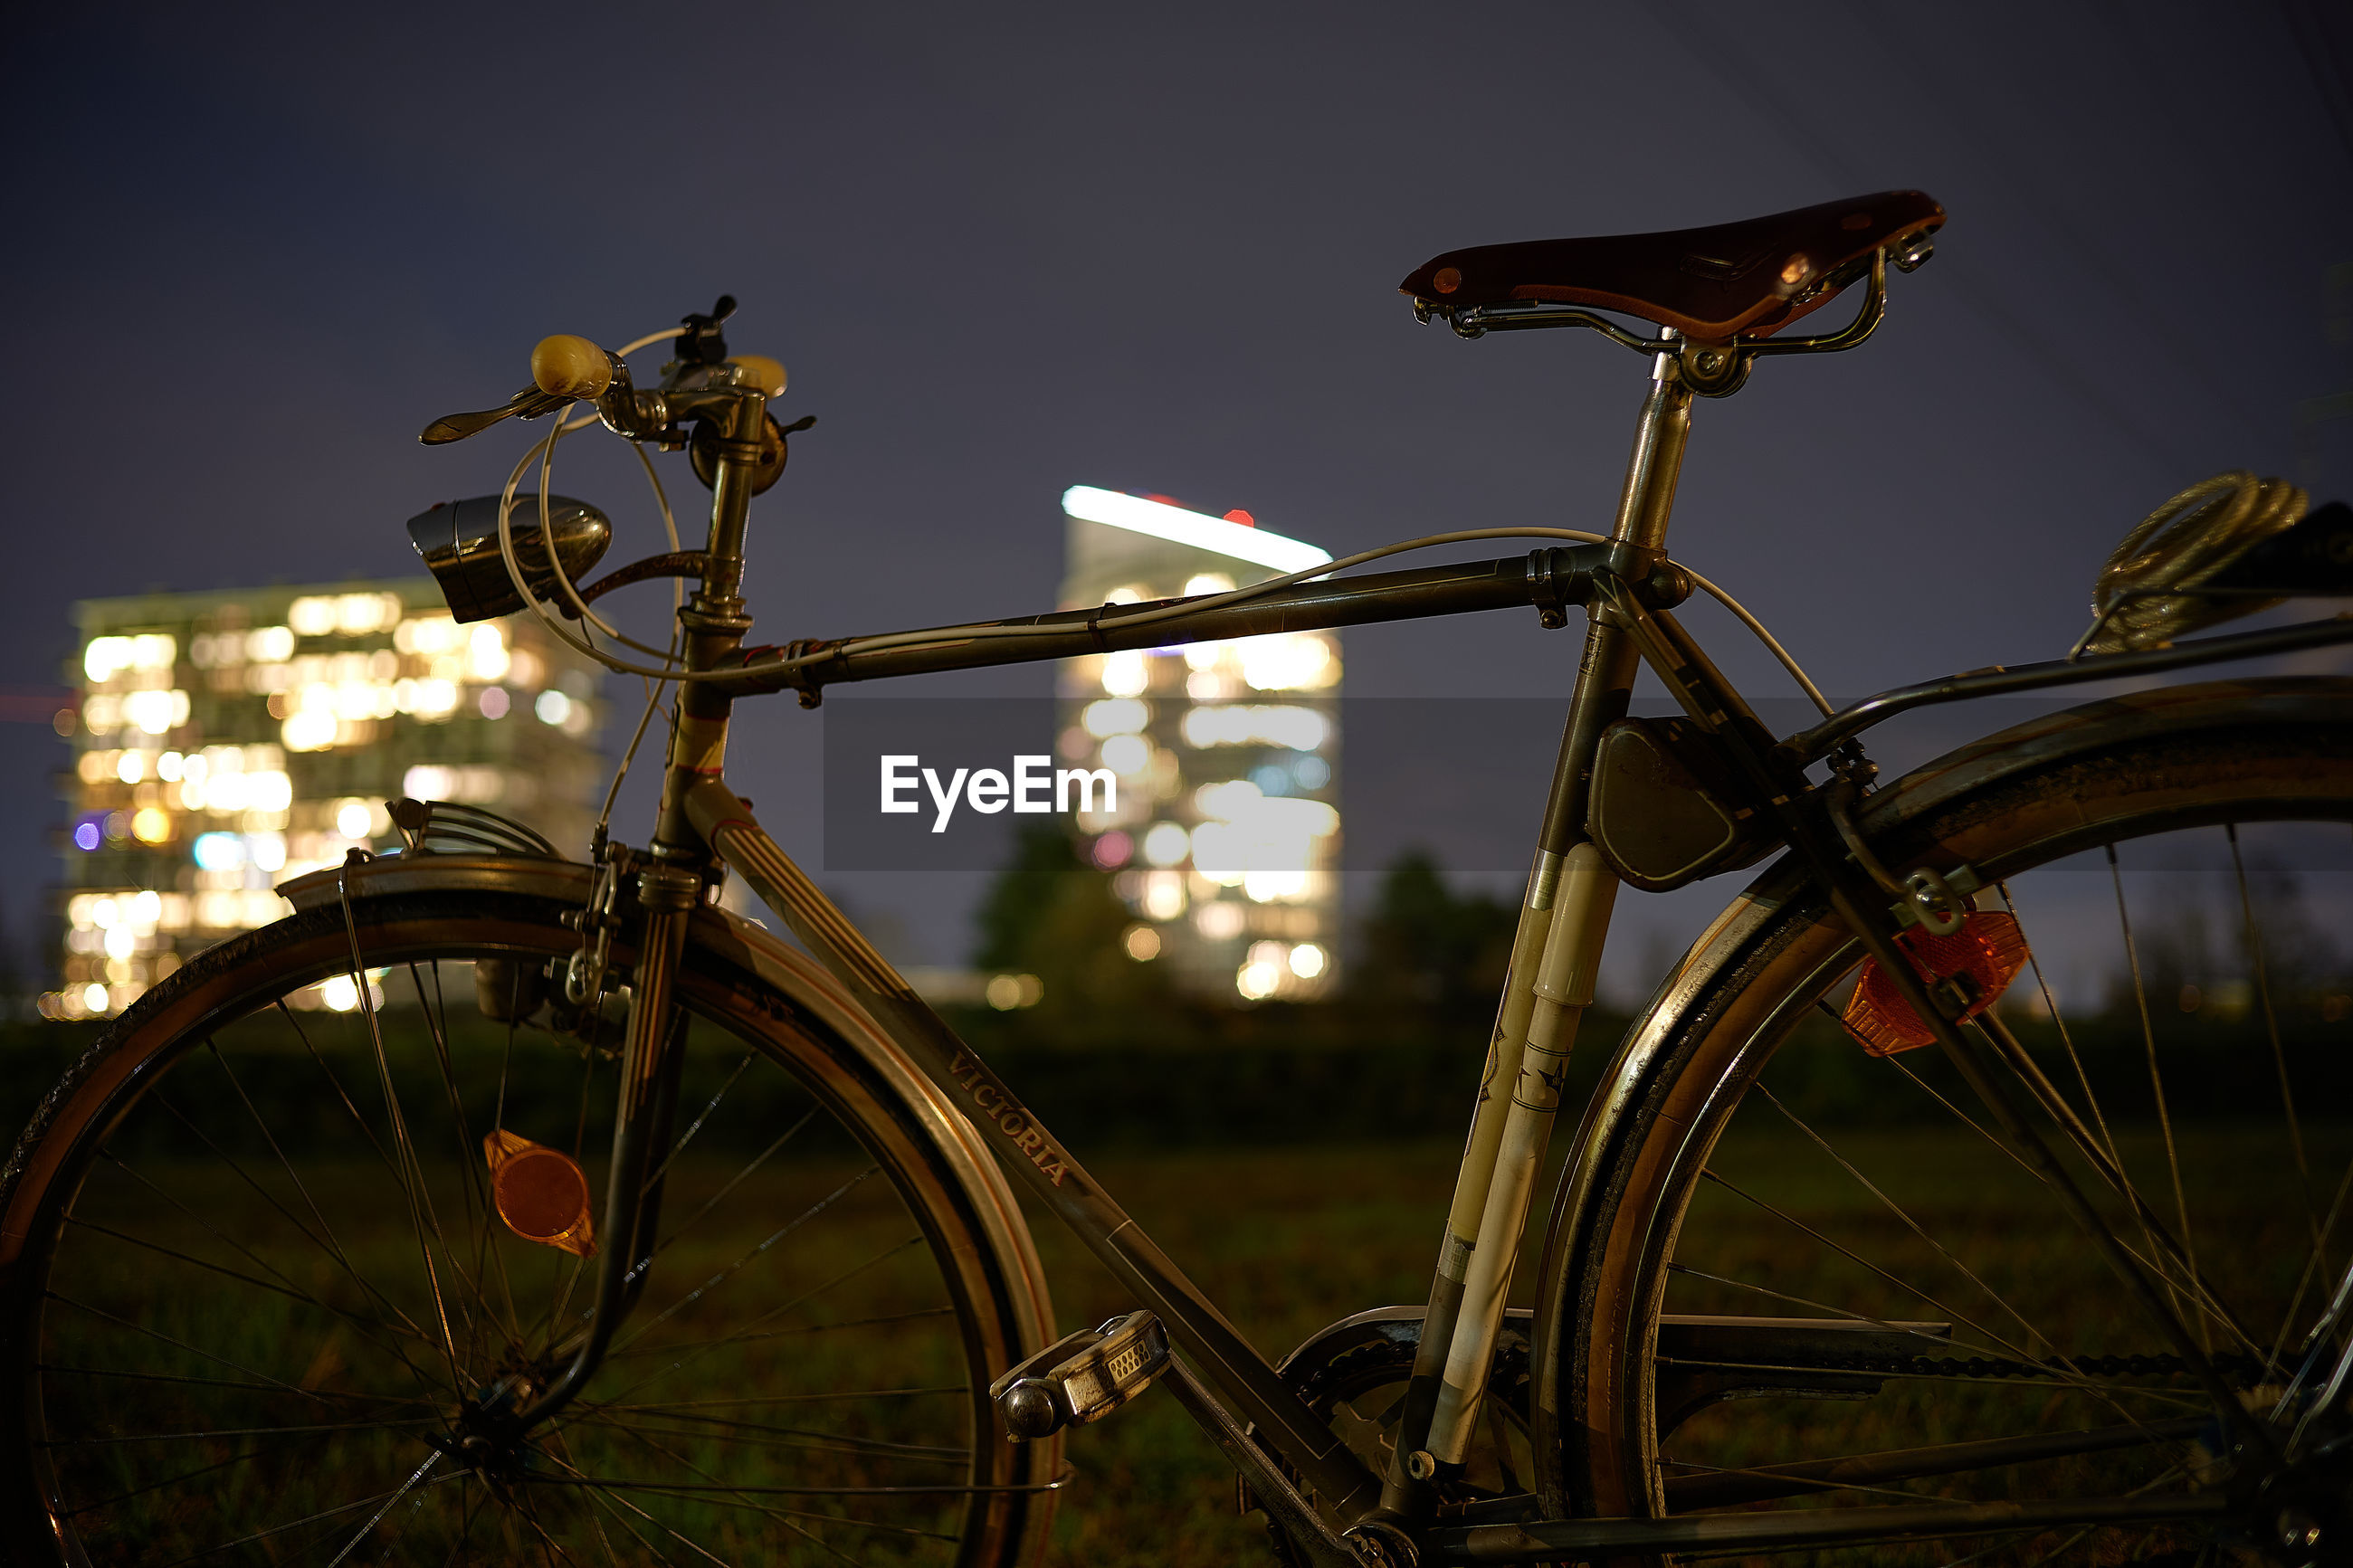 CLOSE-UP OF BICYCLE AGAINST SKY